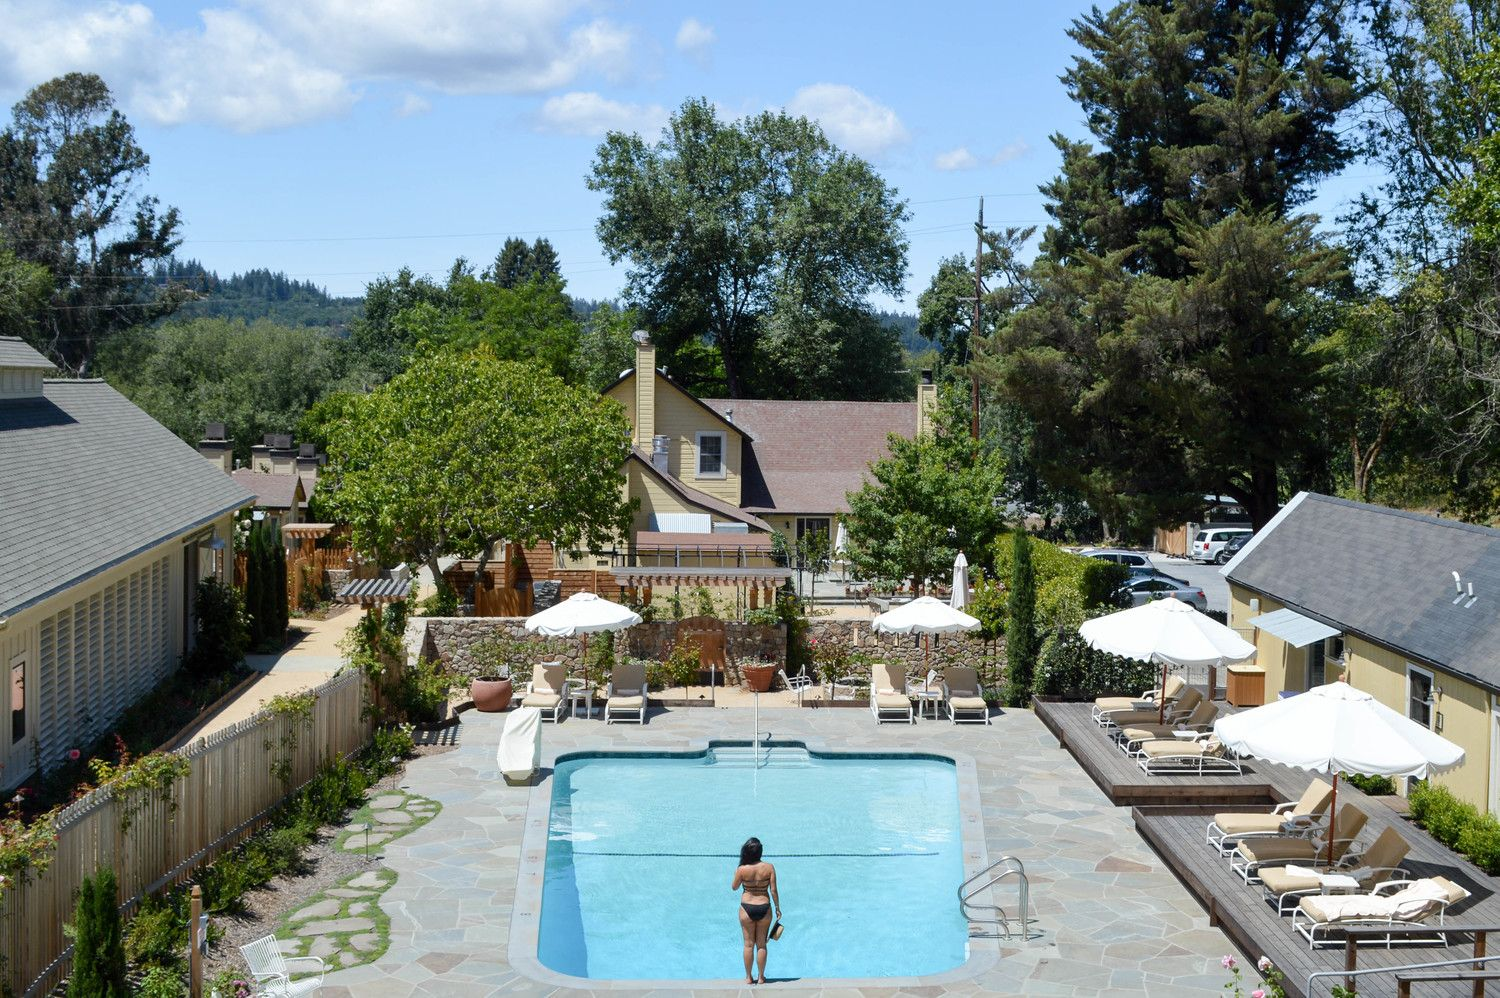 Russian River Valley Luxury Stay The Farmhouse Inn Review